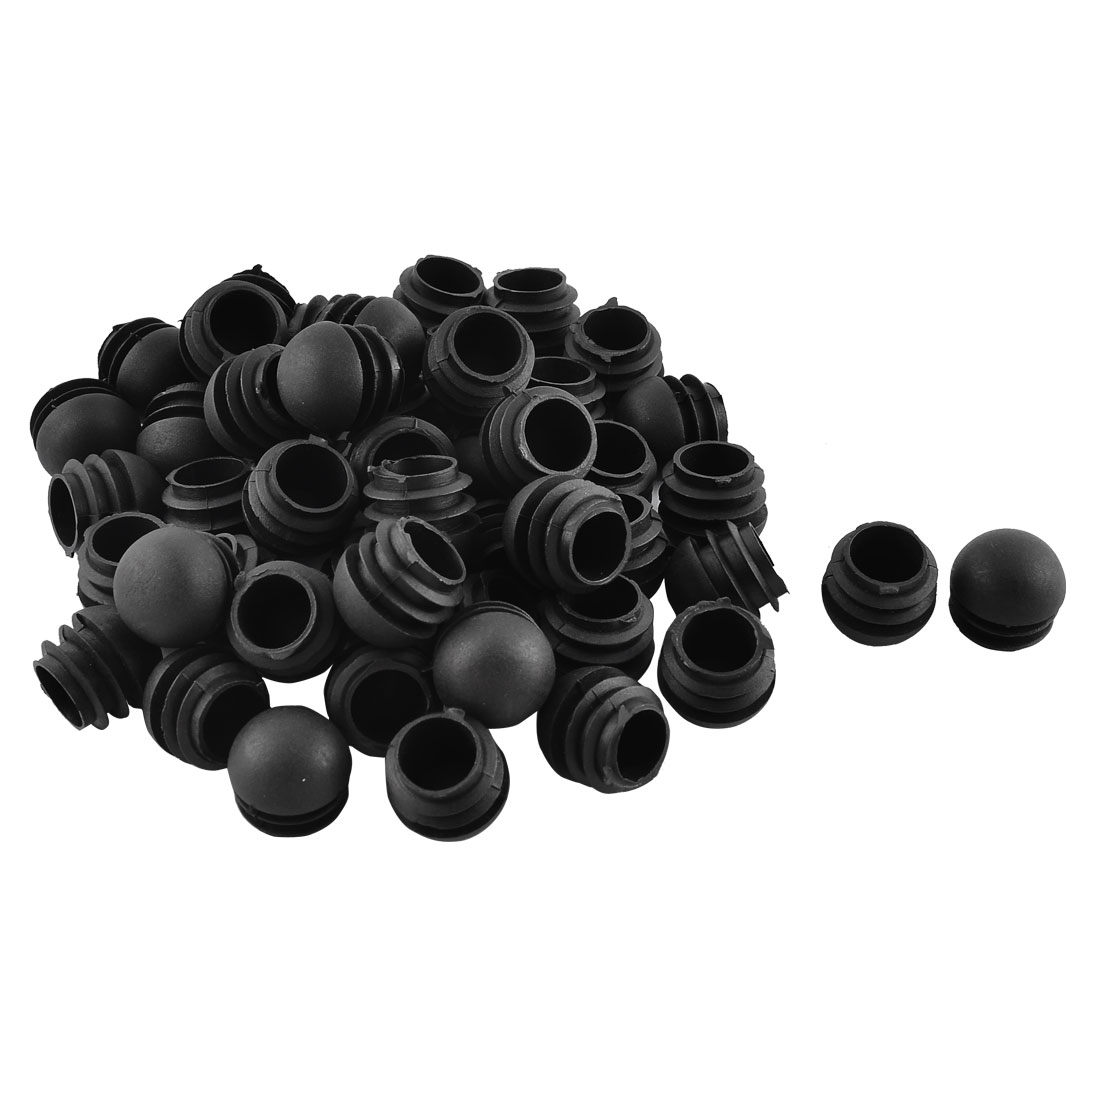 Office Plastic Round Shaped Furniture Table Chair Leg Feet Tube Insert Black 50 Pcs